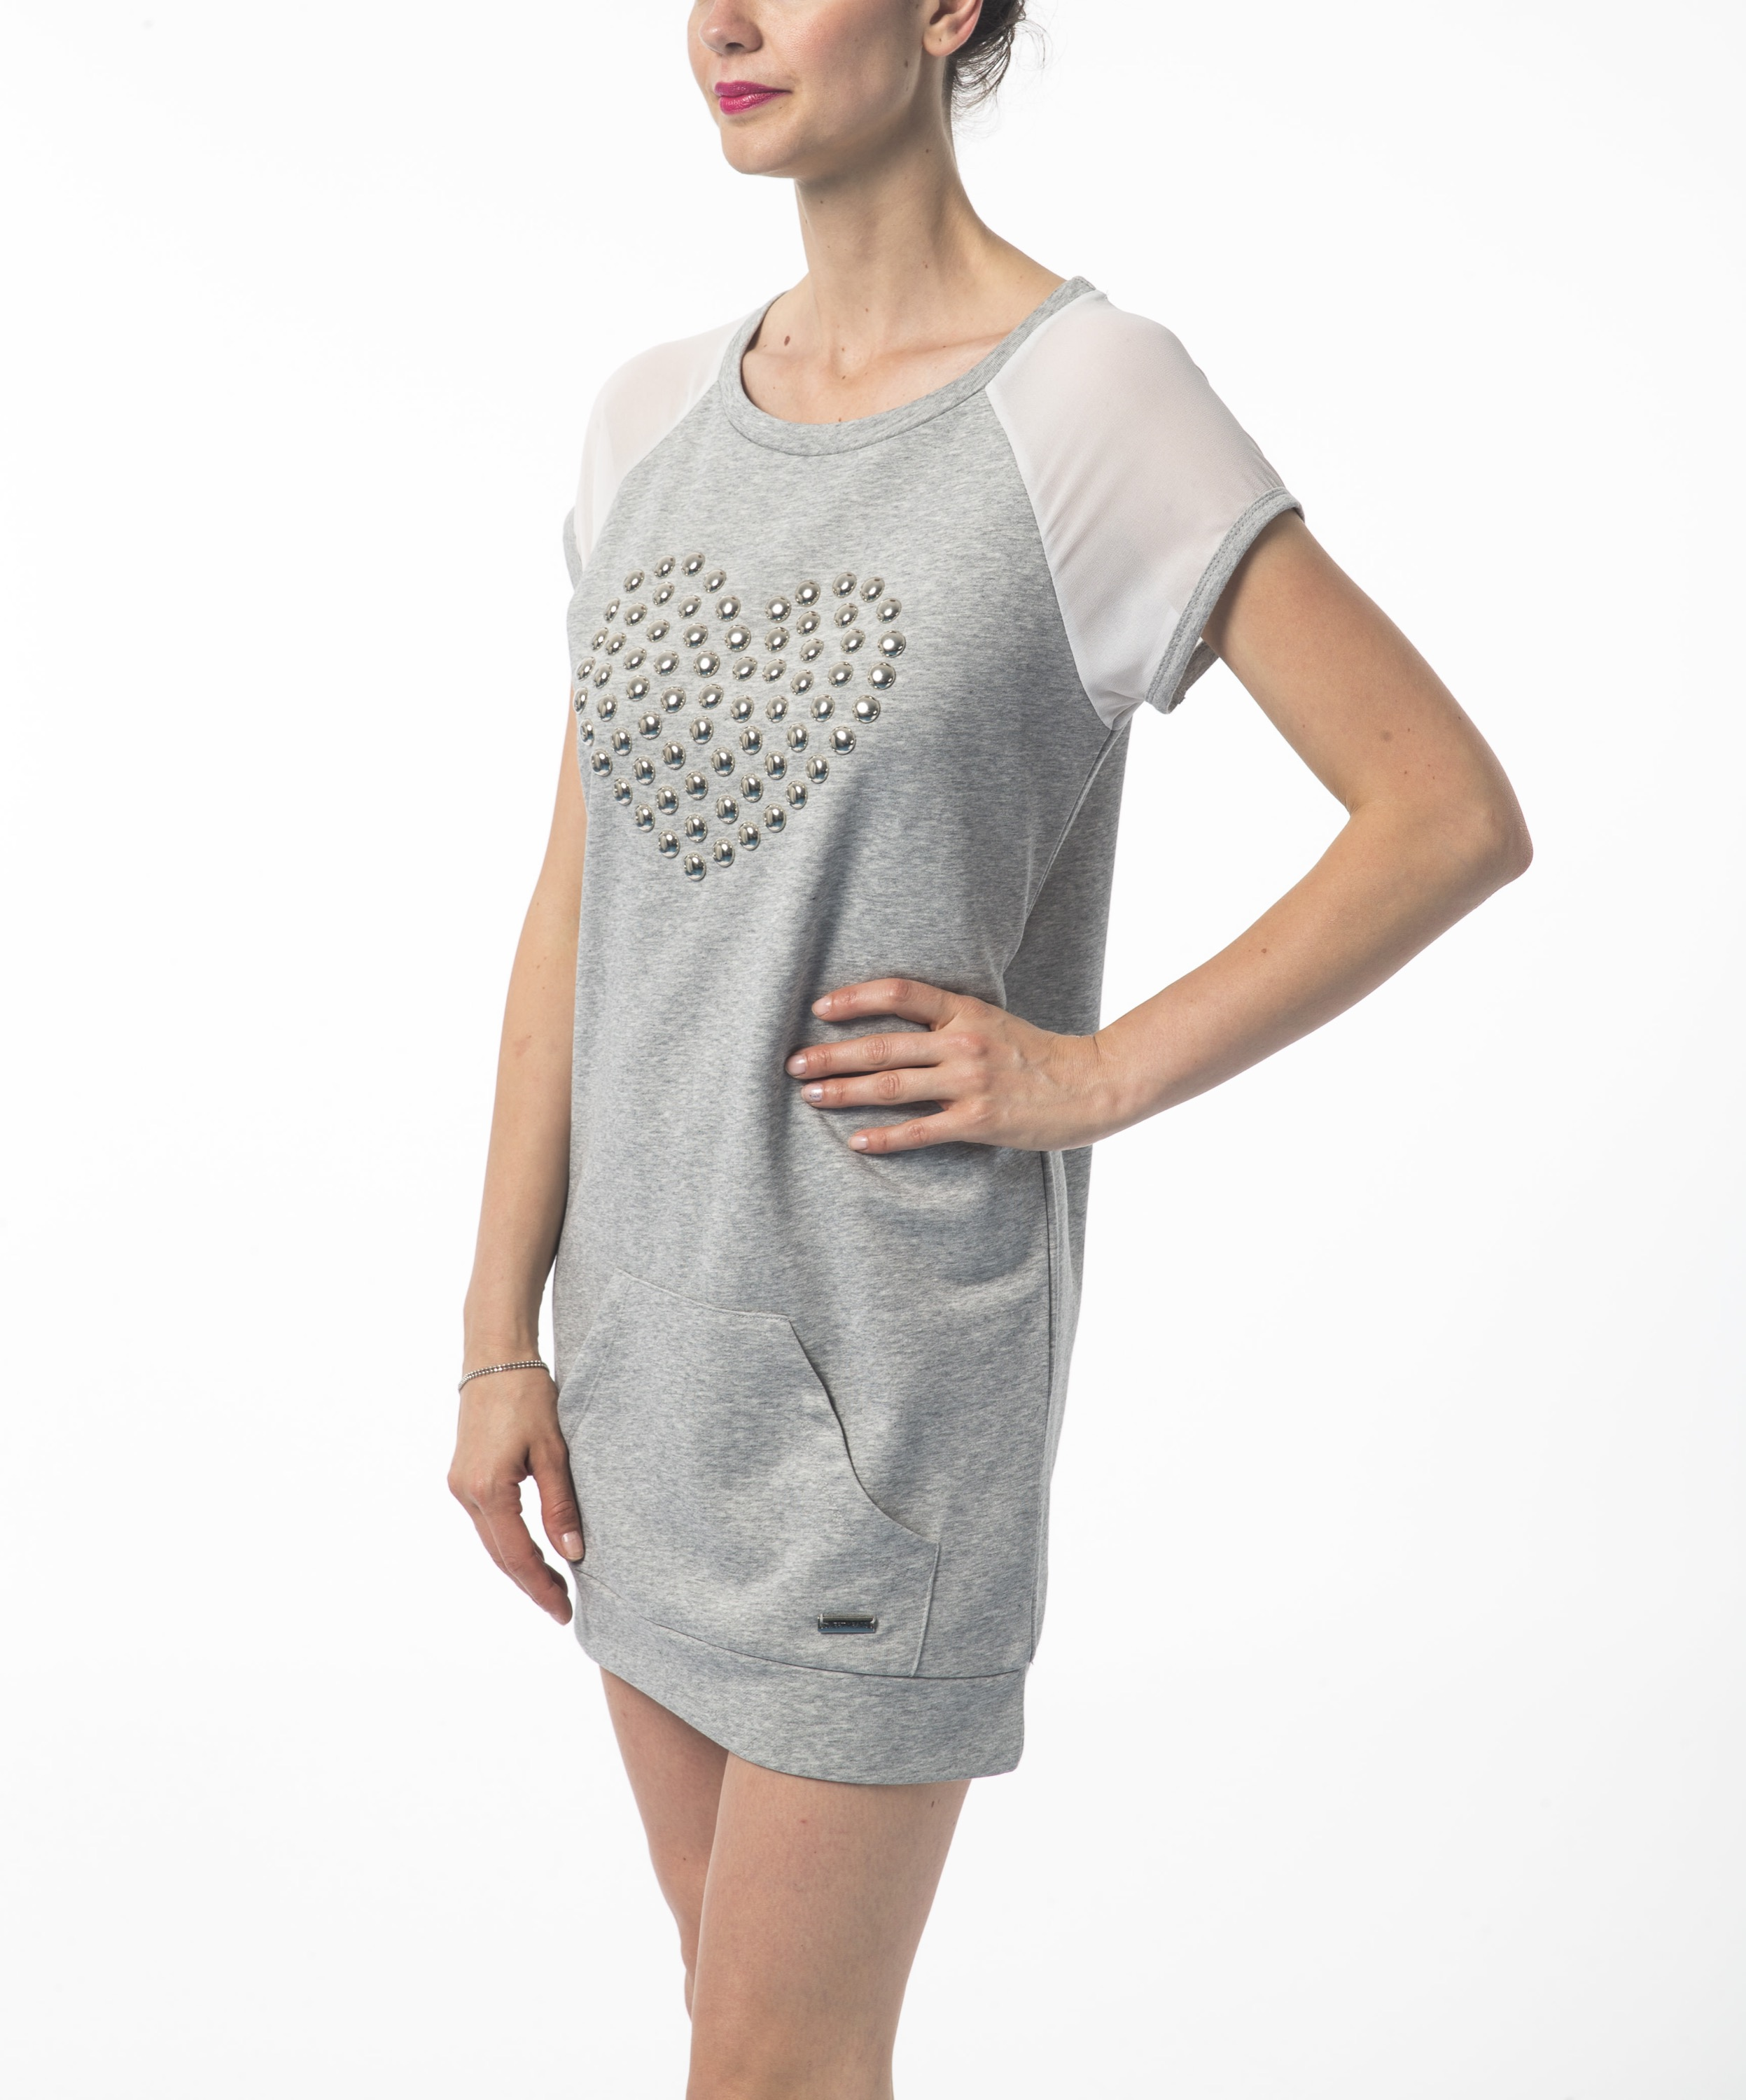 shirt Sweet Years Gris T 21147 Femme WD9HYIE2